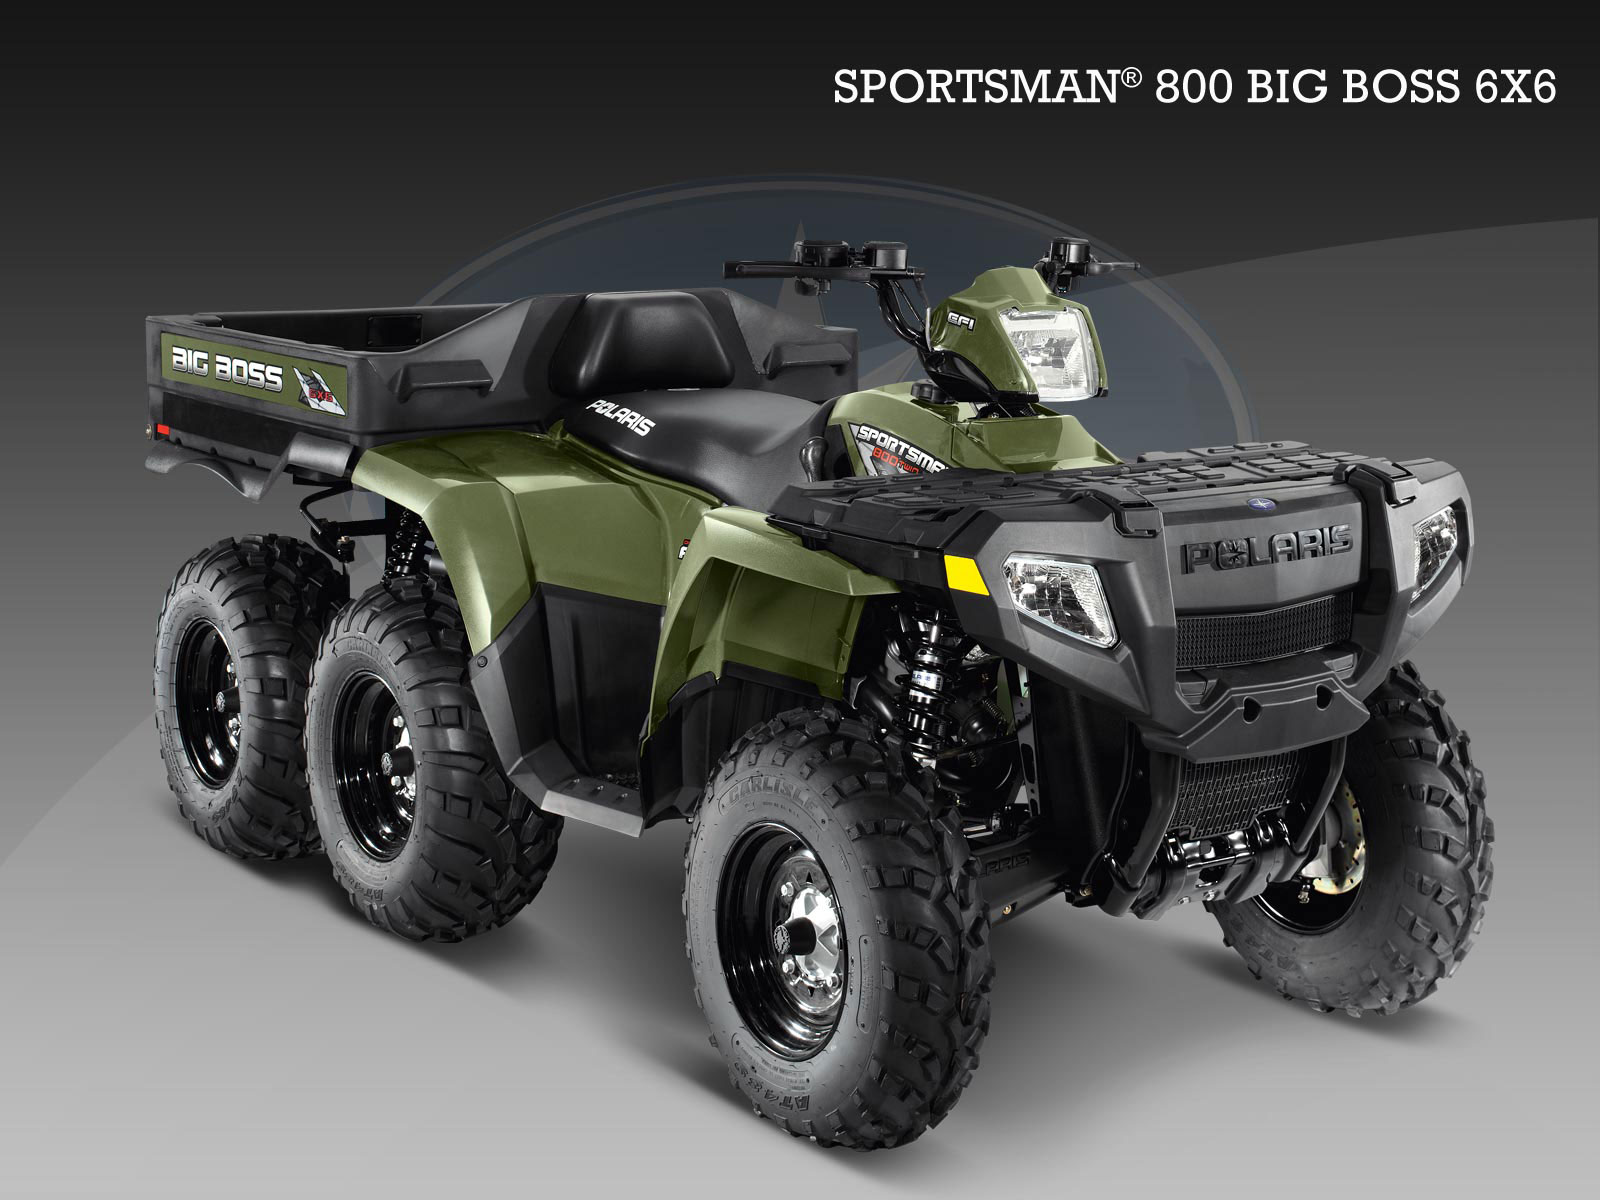 2010 Polaris 800 BIG BOSS 6X6